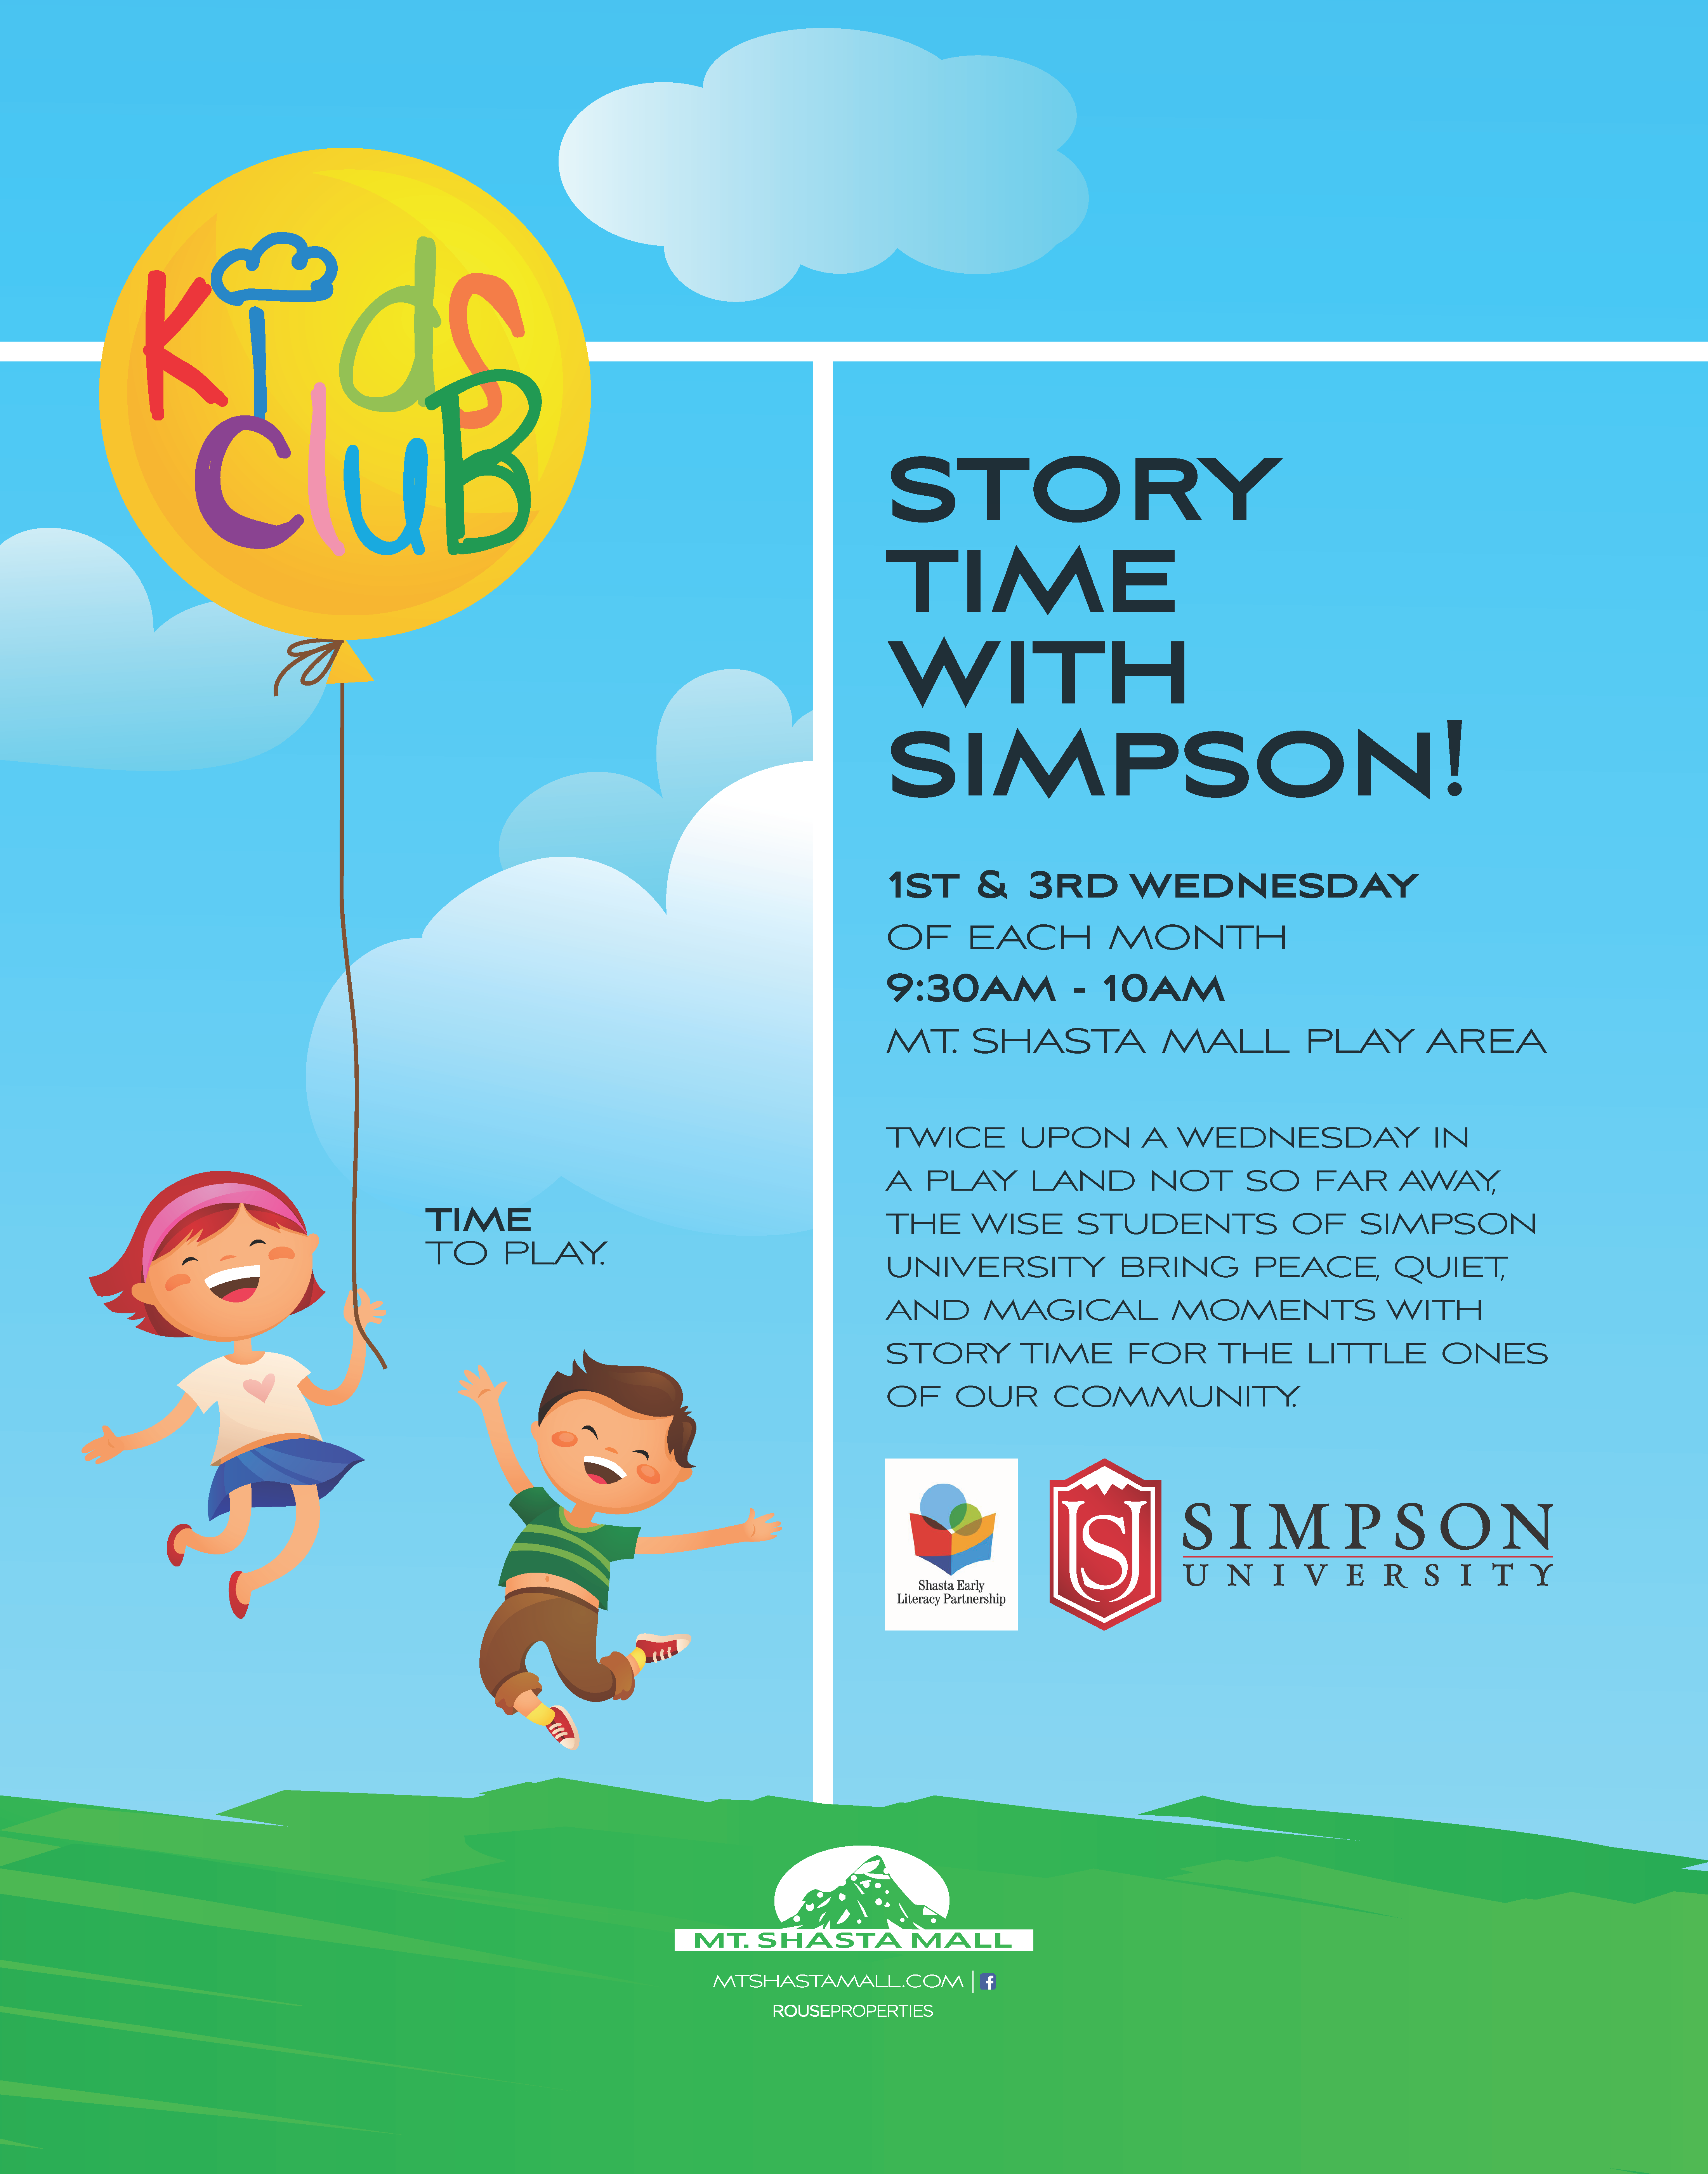 Kids Club-Story Time With Simpson-Flyer With Logos - First -2404